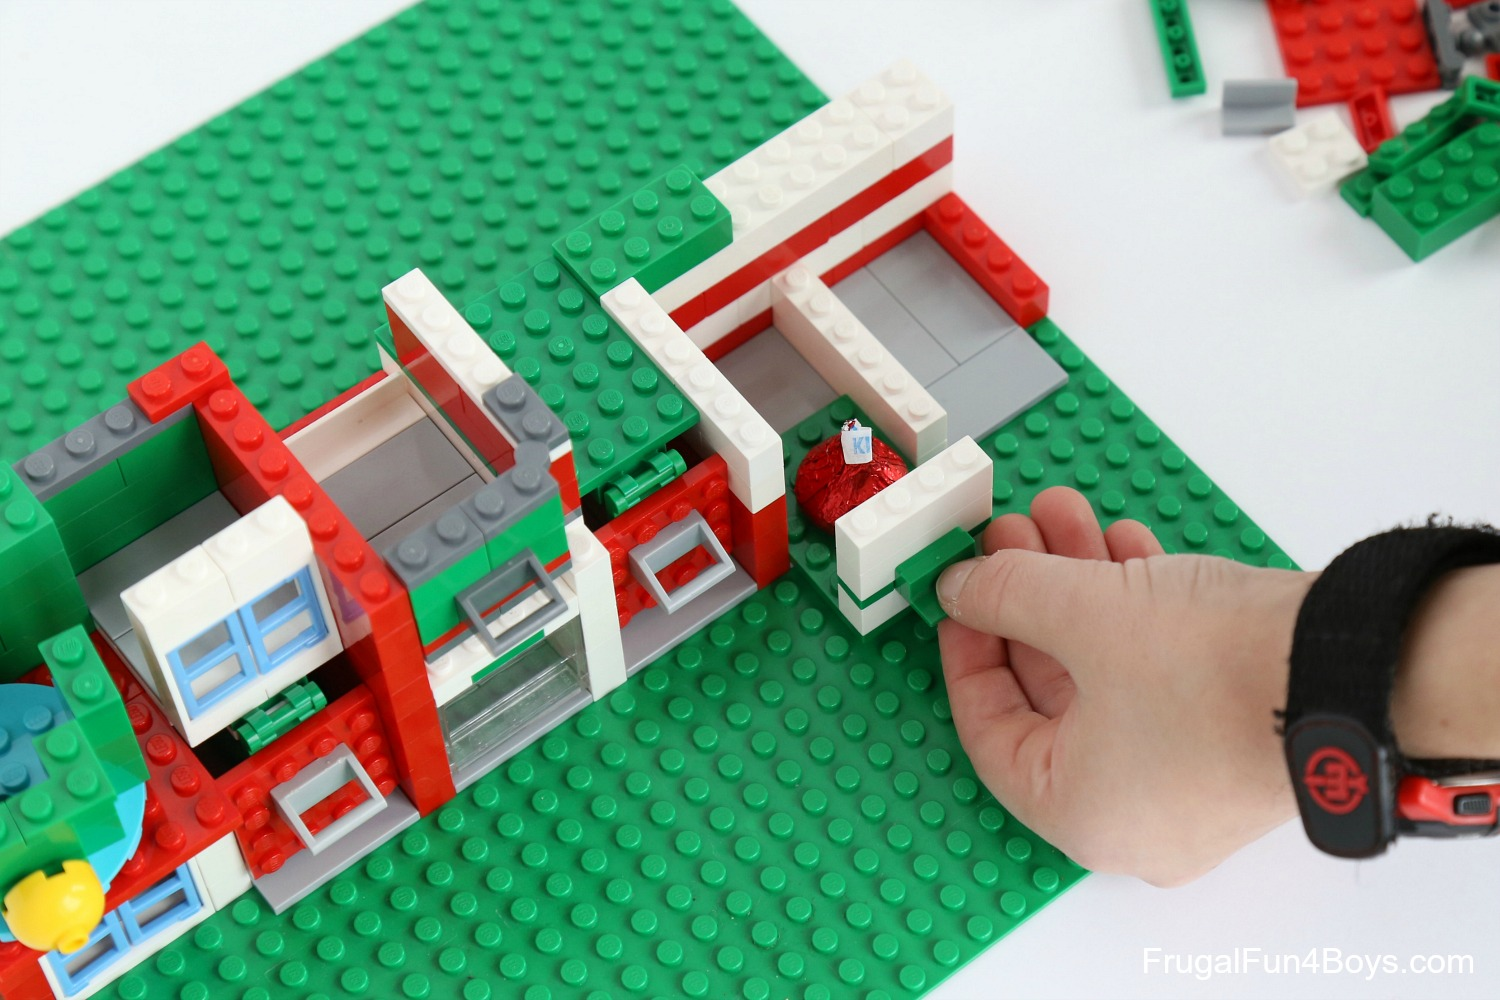 Another Way To Make A Door Is By Using A 1 X 2 \\u2013 1 X 2 Hinge Plate. If You Use Two Per Door The Hinge Will Be More Stable. & Lego Door Hinge \u0026 Another Way To Make A Door Is By Using A 1 X 2 ...